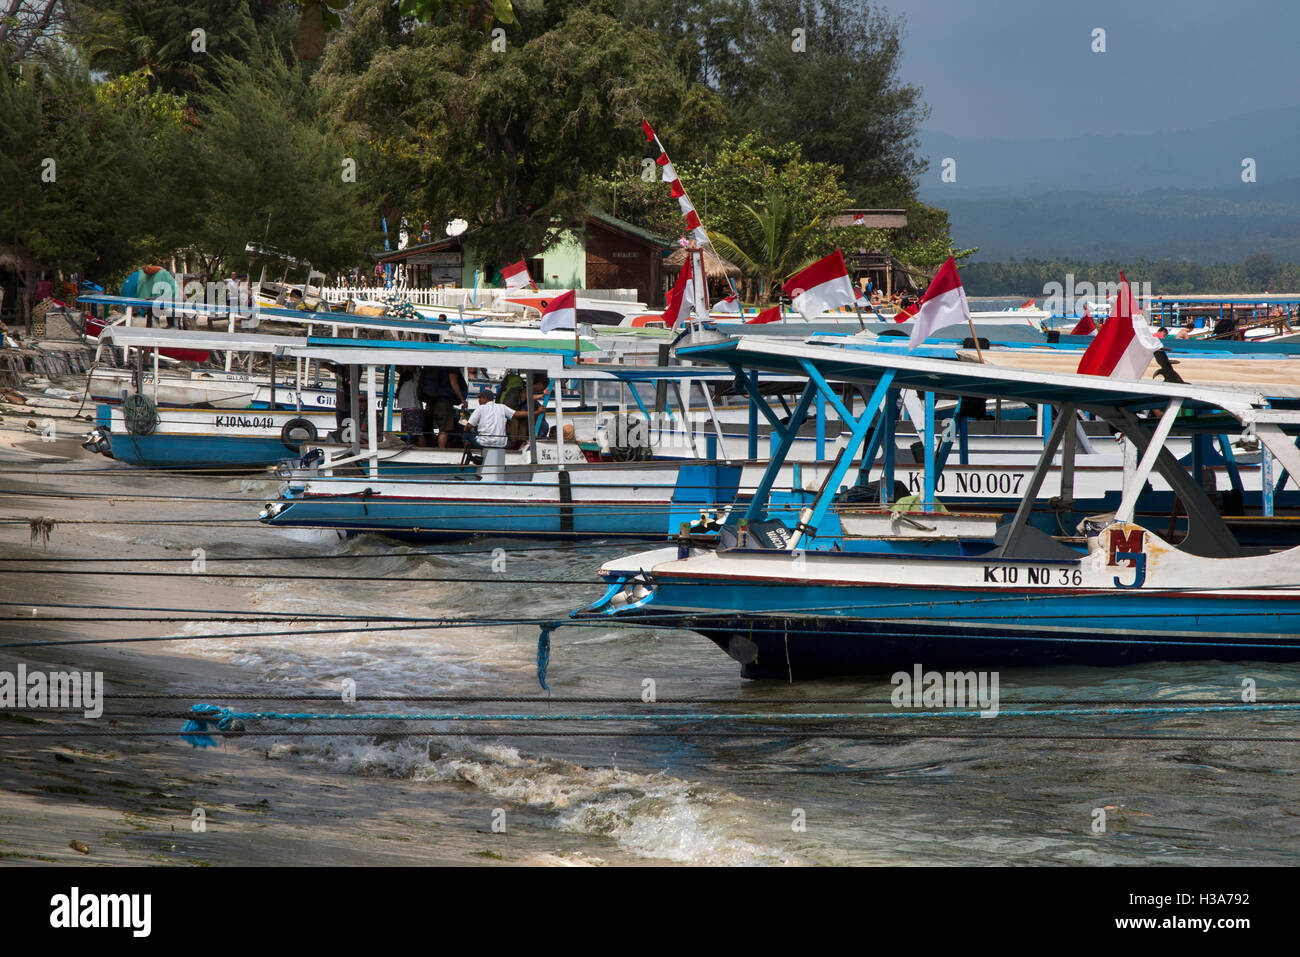 Indonesia, Lombok, Gili Air, public ferry boats to Bangsal moored at beach - Stock Image